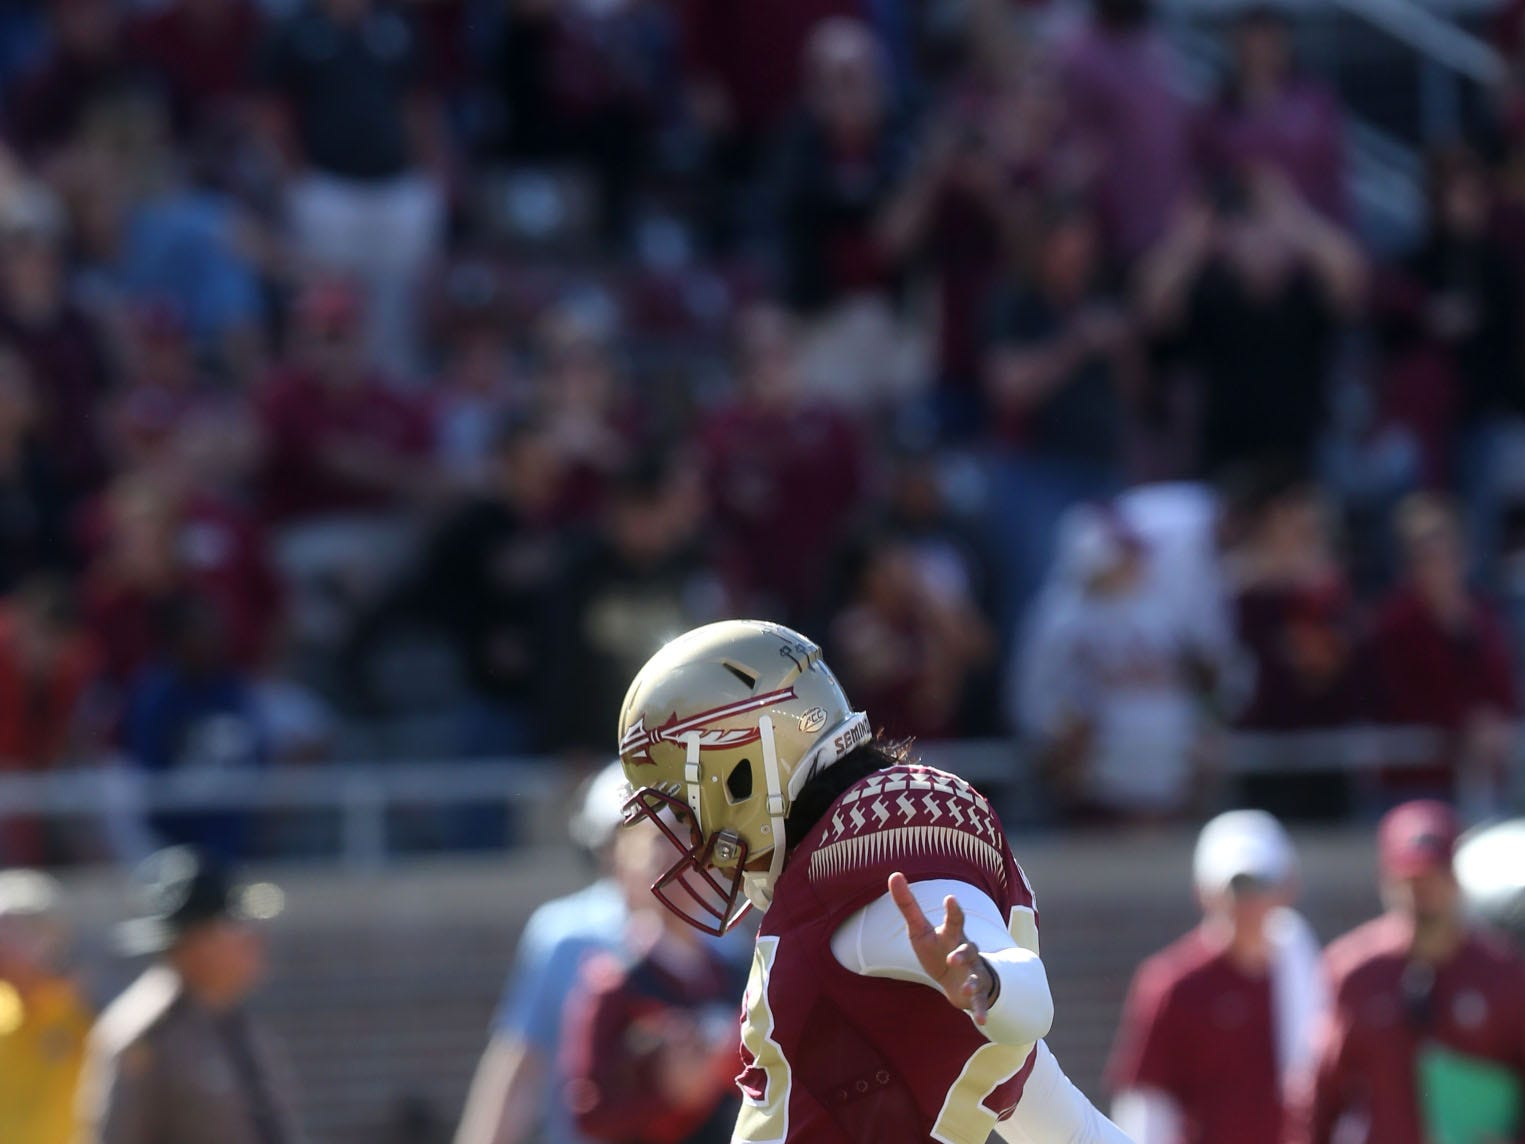 Florida State Seminoles place kicker Ricky Aguayo (23) tries for a field goal as the Florida State Seminoles take on the Clemson Tigers in college football at Doak S. Campbell Stadium on Saturday, Oct. 27, 2018.